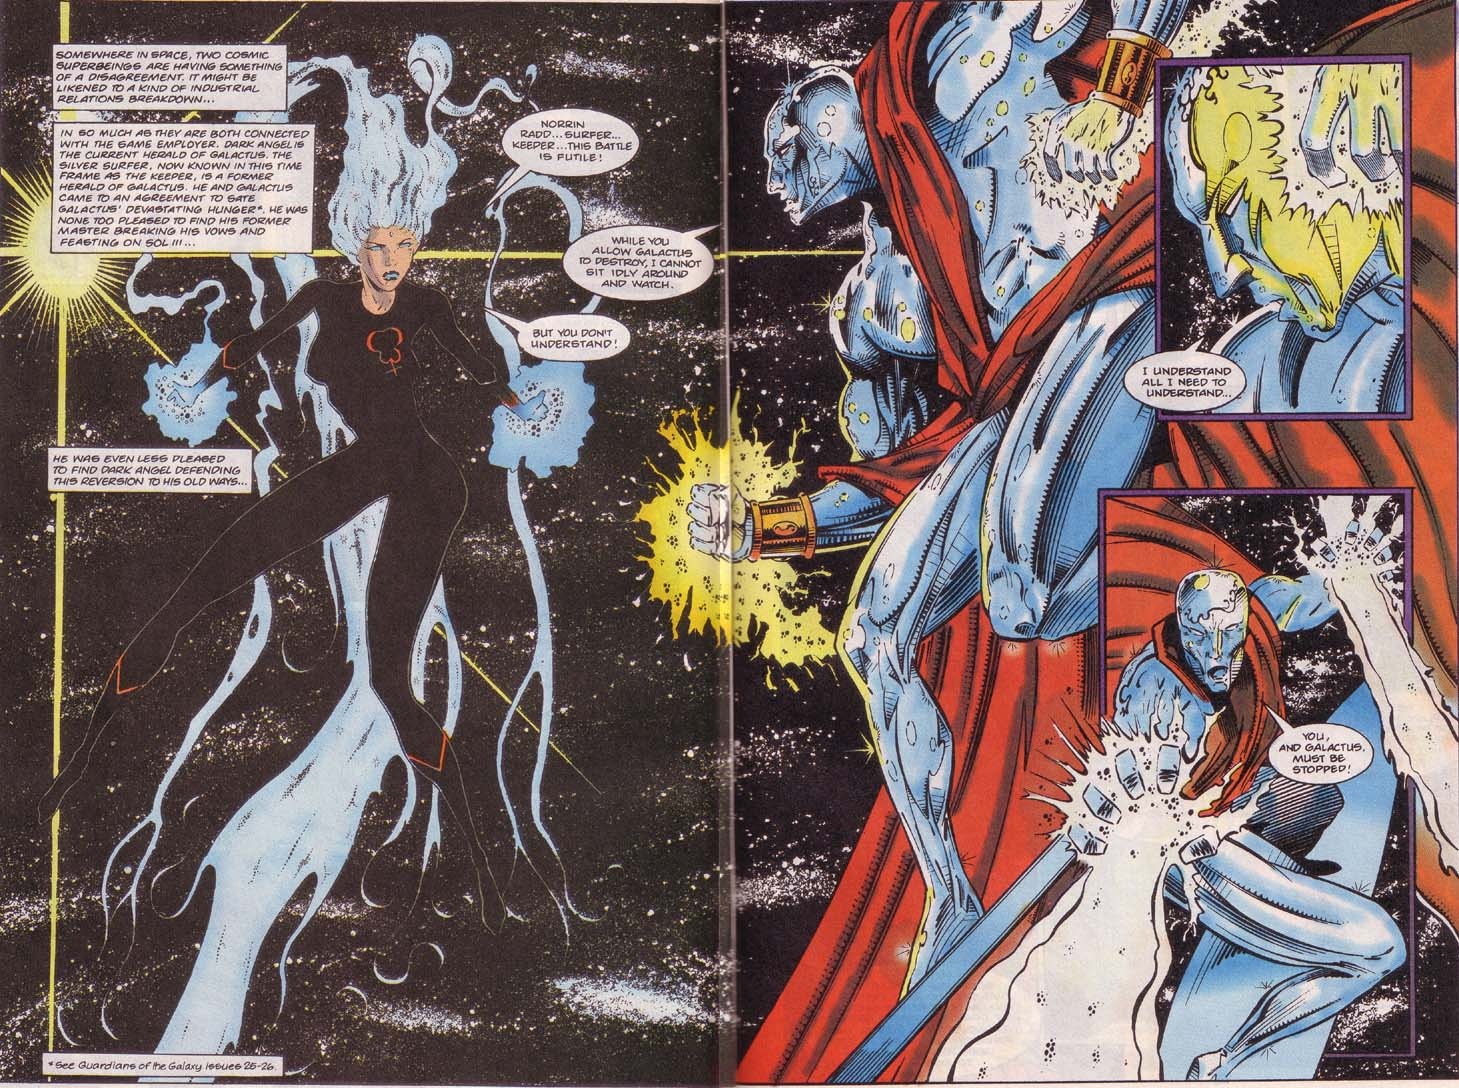 Read online Cyberspace 3000 comic -  Issue #4 - 16